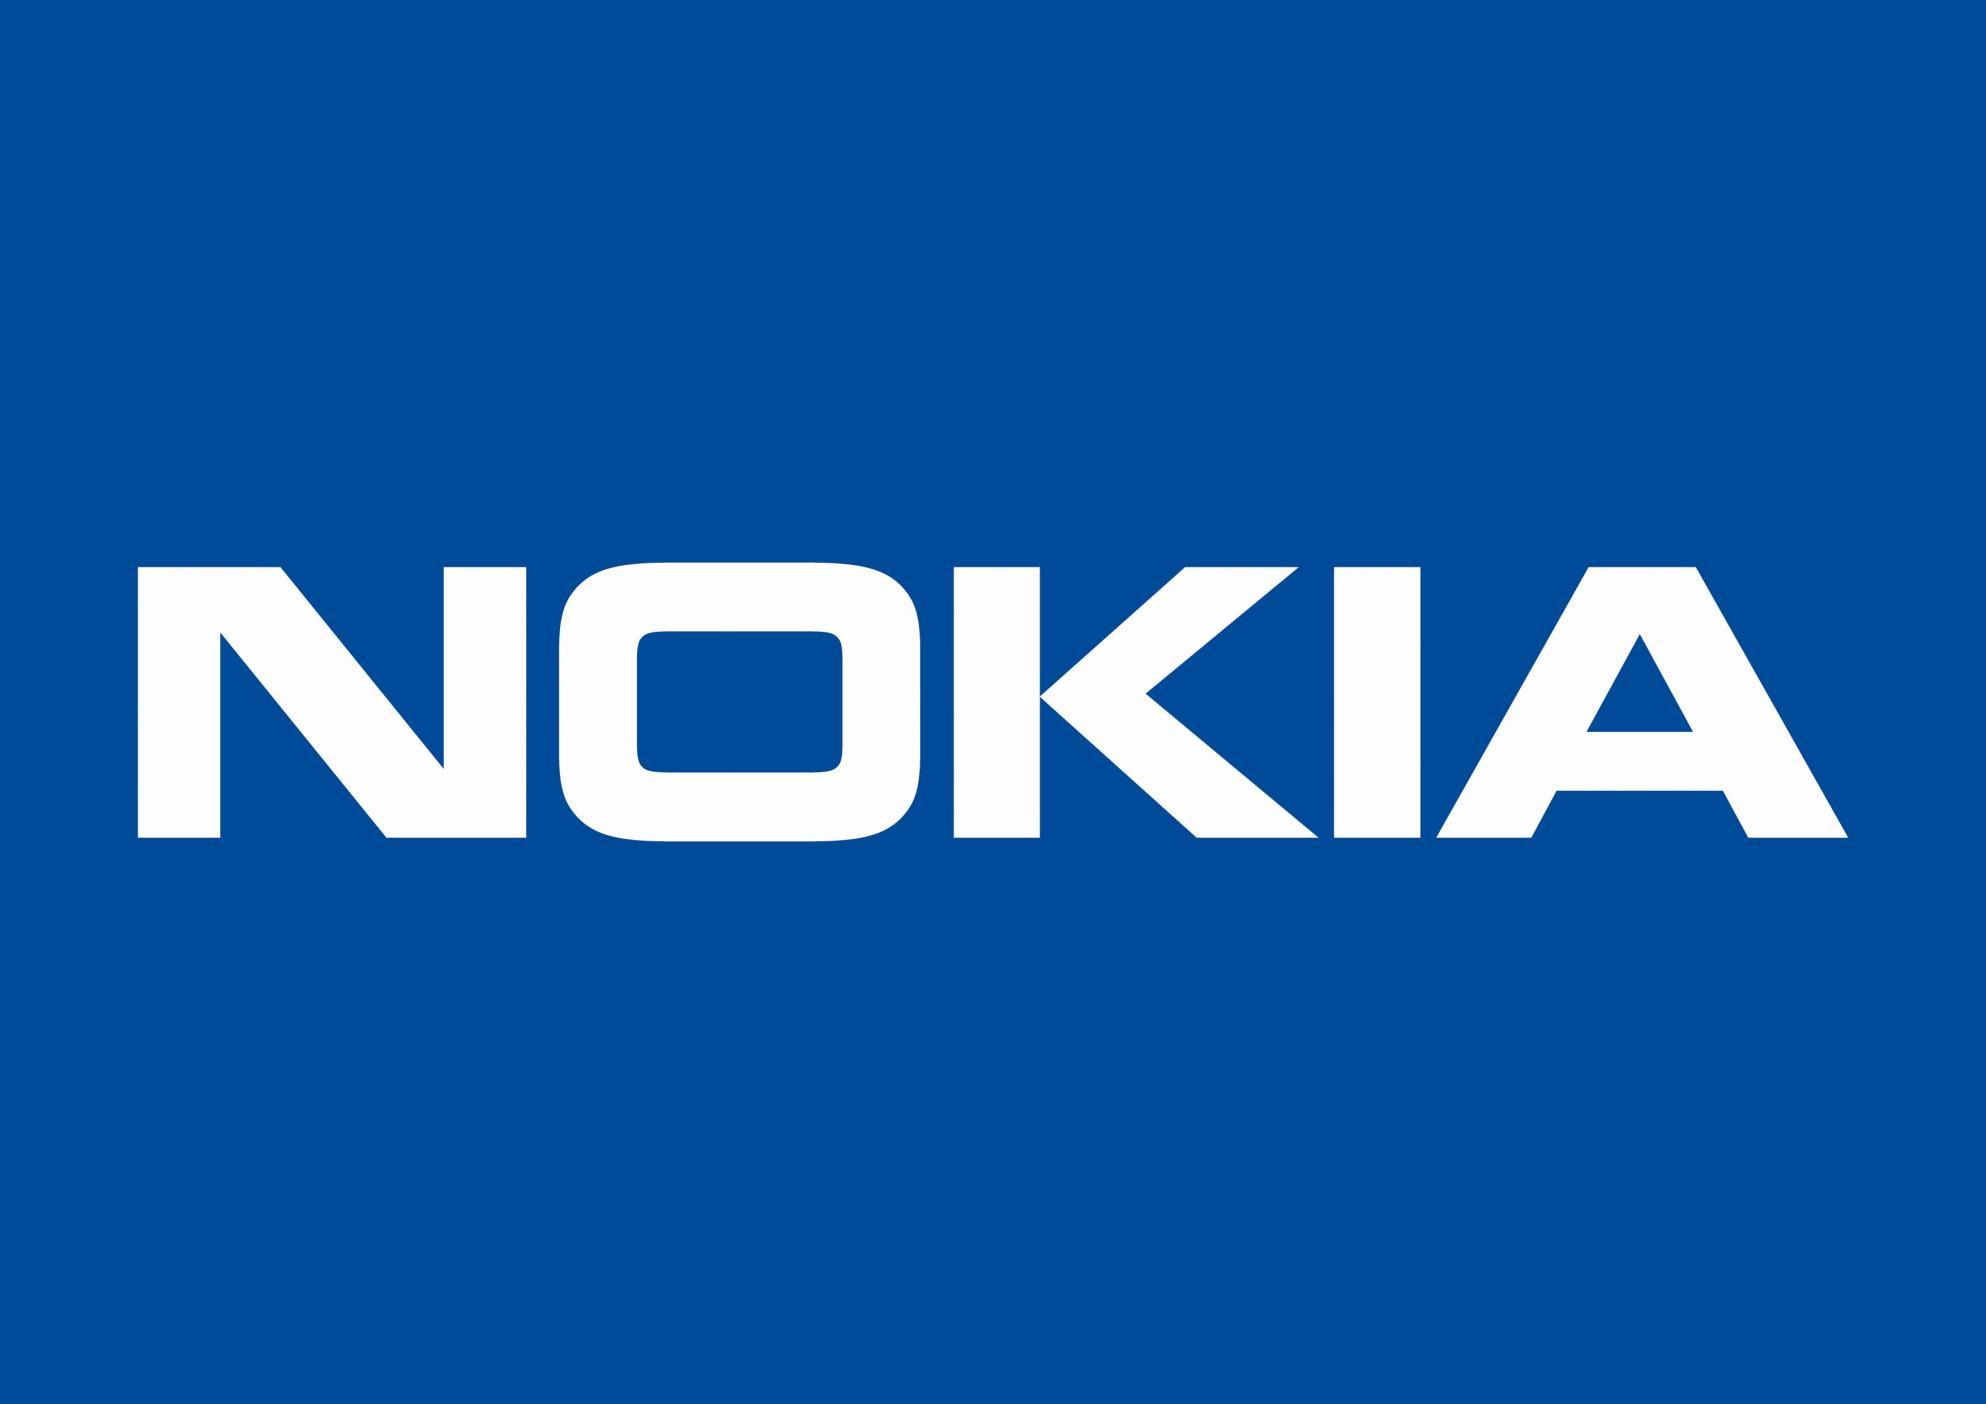 Nokia Flagship Device May Come With Snapdragon 835 and 6 GB RAM